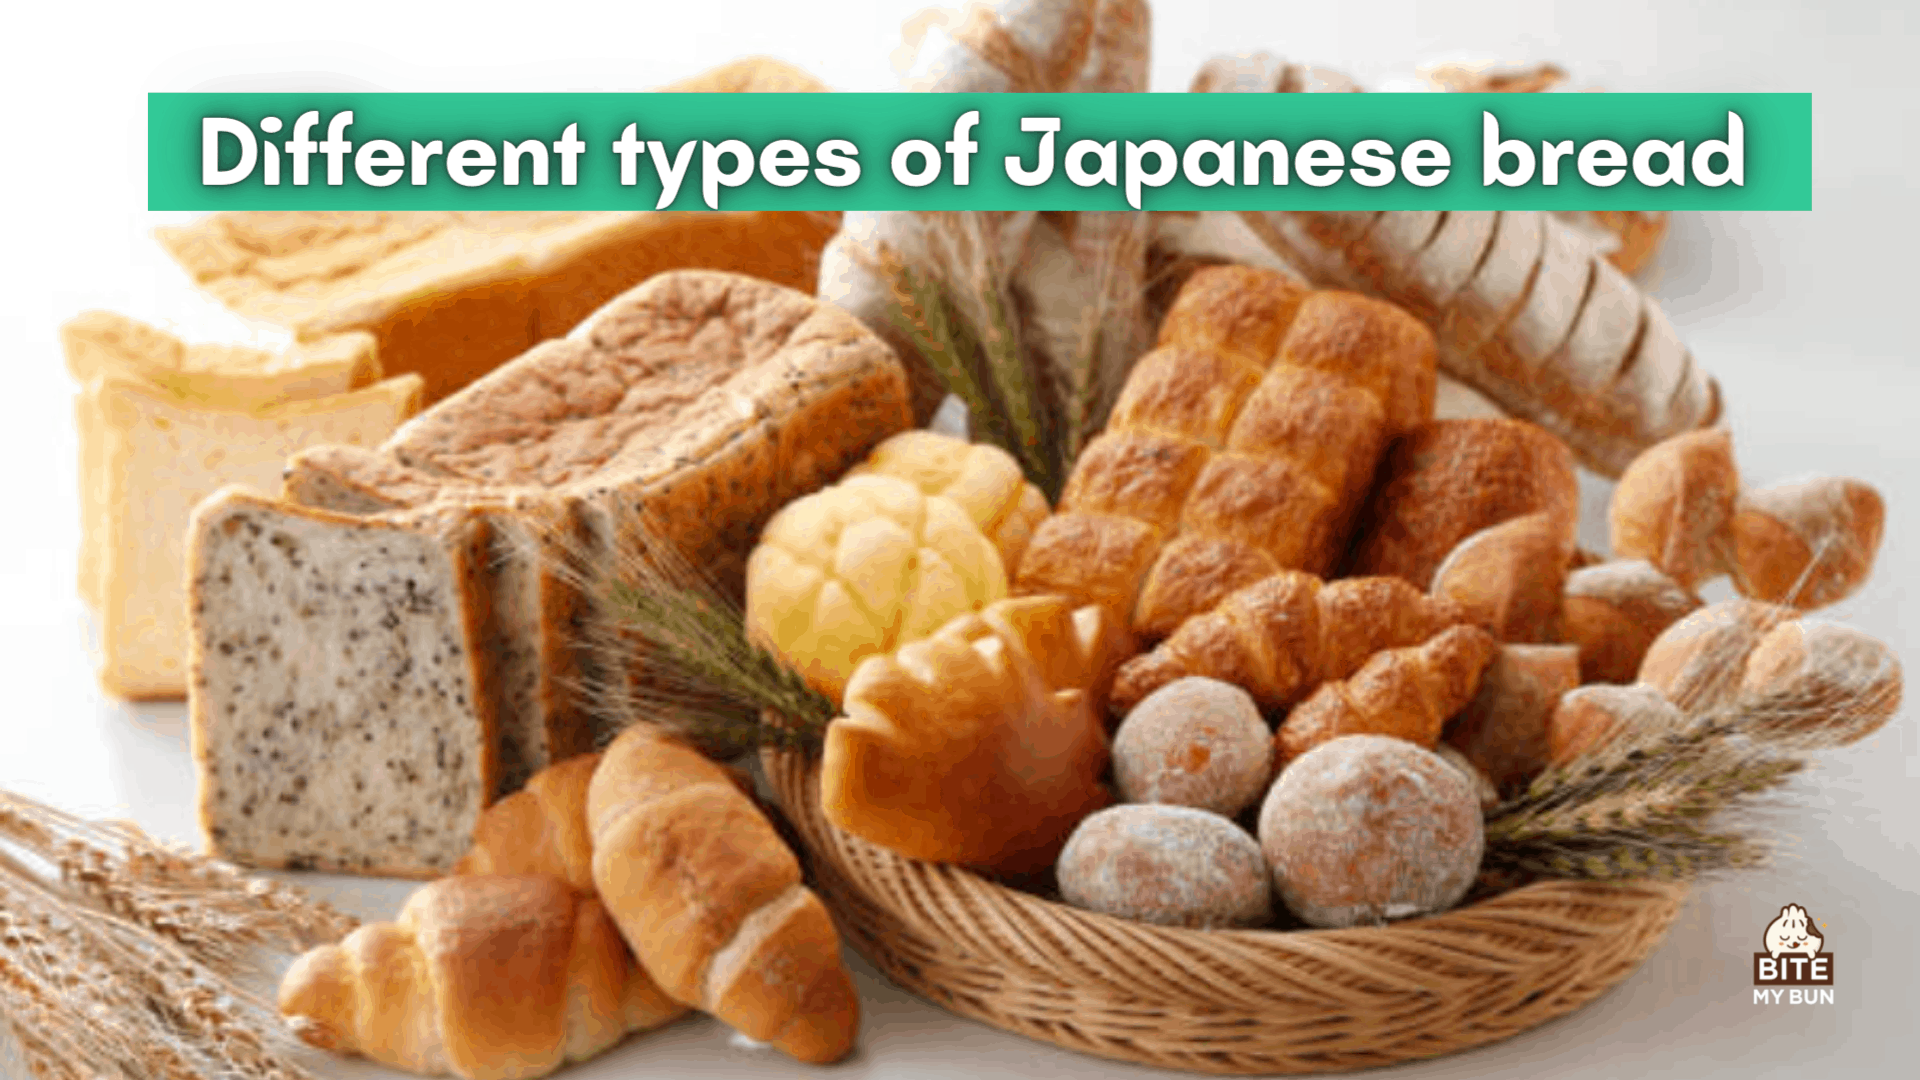 Your ultimate guide to different types of Japanese bread